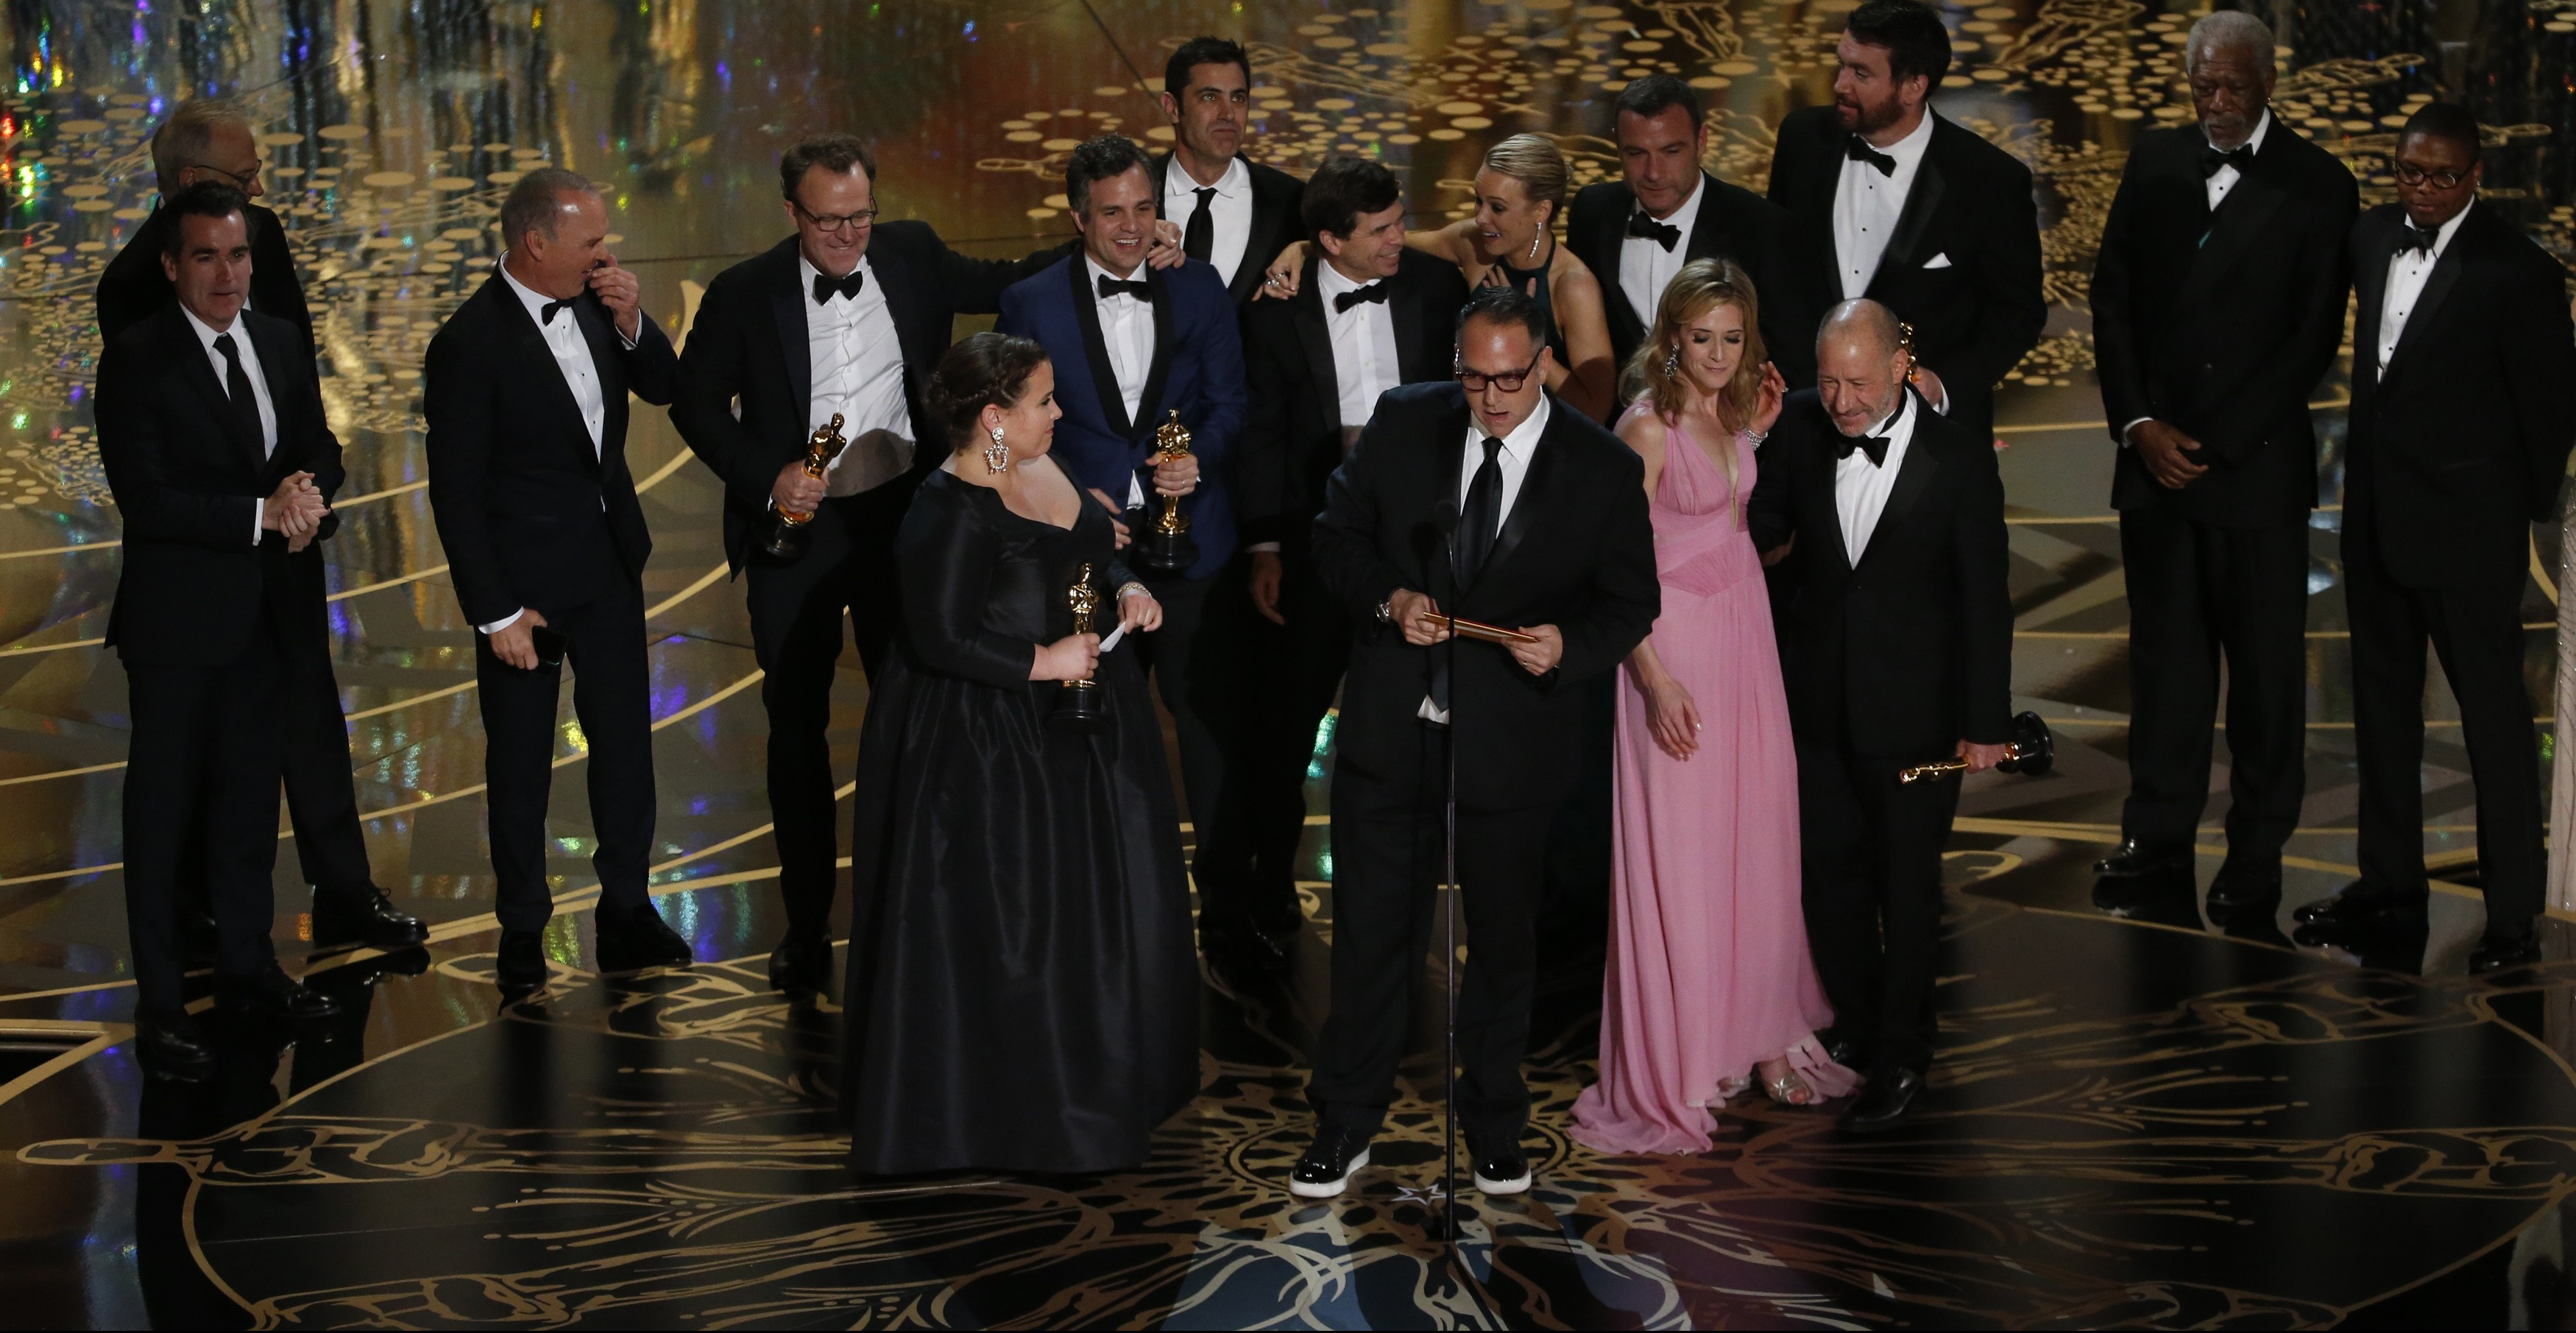 """Producer Michael Sugar accepts the Oscar for Best Picture for his film """"Spotlight"""" with his fellow producers and cast at the 88th Academy Awards in Hollywood, California February 28, 2016.  REUTERS/Mario Anzuoni - RTS8H5D"""